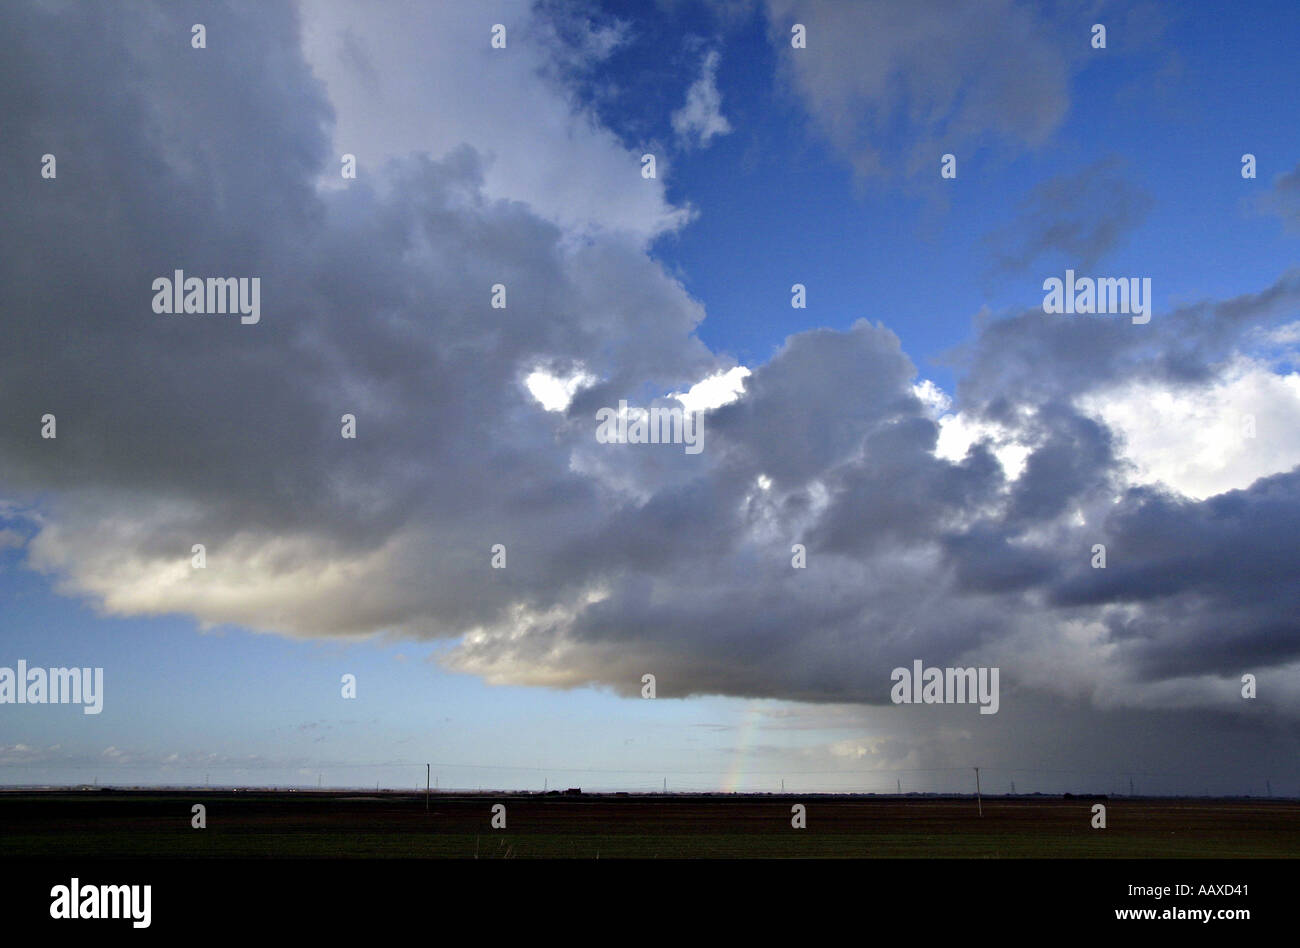 clouds convection precipitation rainfall moisture atmosphere weather system climate changeable changable unpredictable fickle st - Stock Image